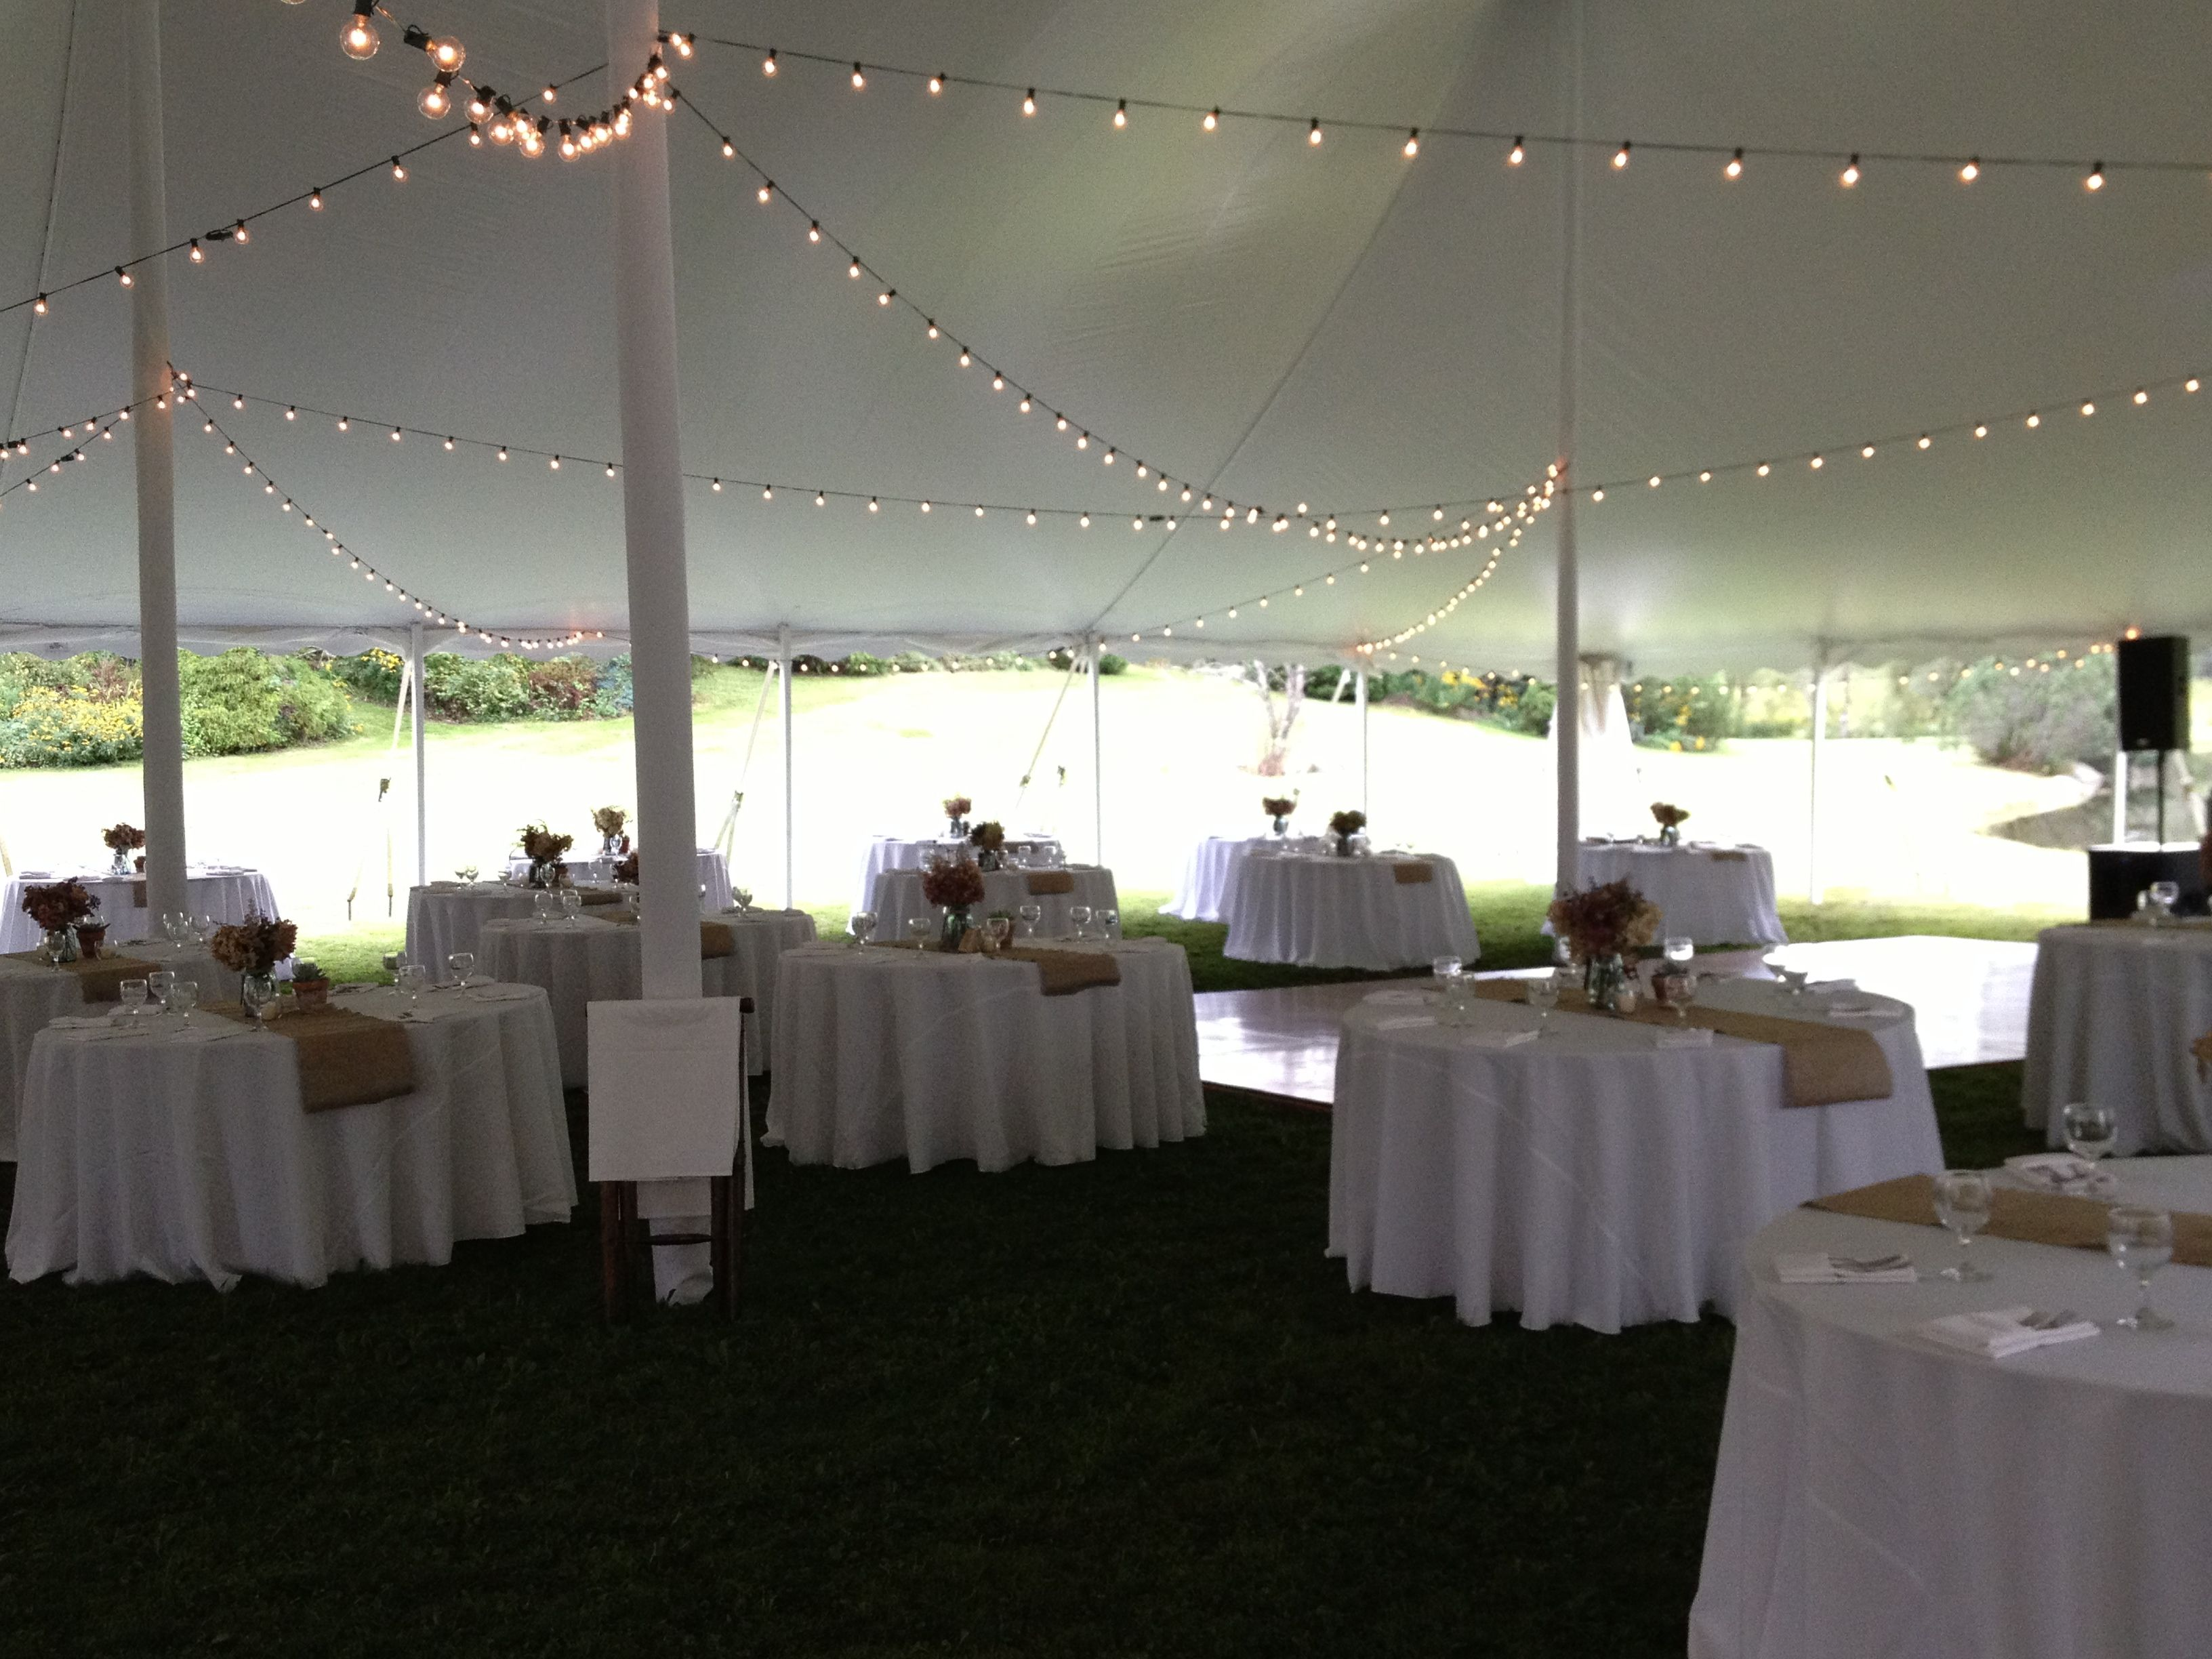 Outdoor wedding tent set up - the tent can be decorated however a bride u0026 groom & Outdoor wedding tent set up - the tent can be decorated however a ...